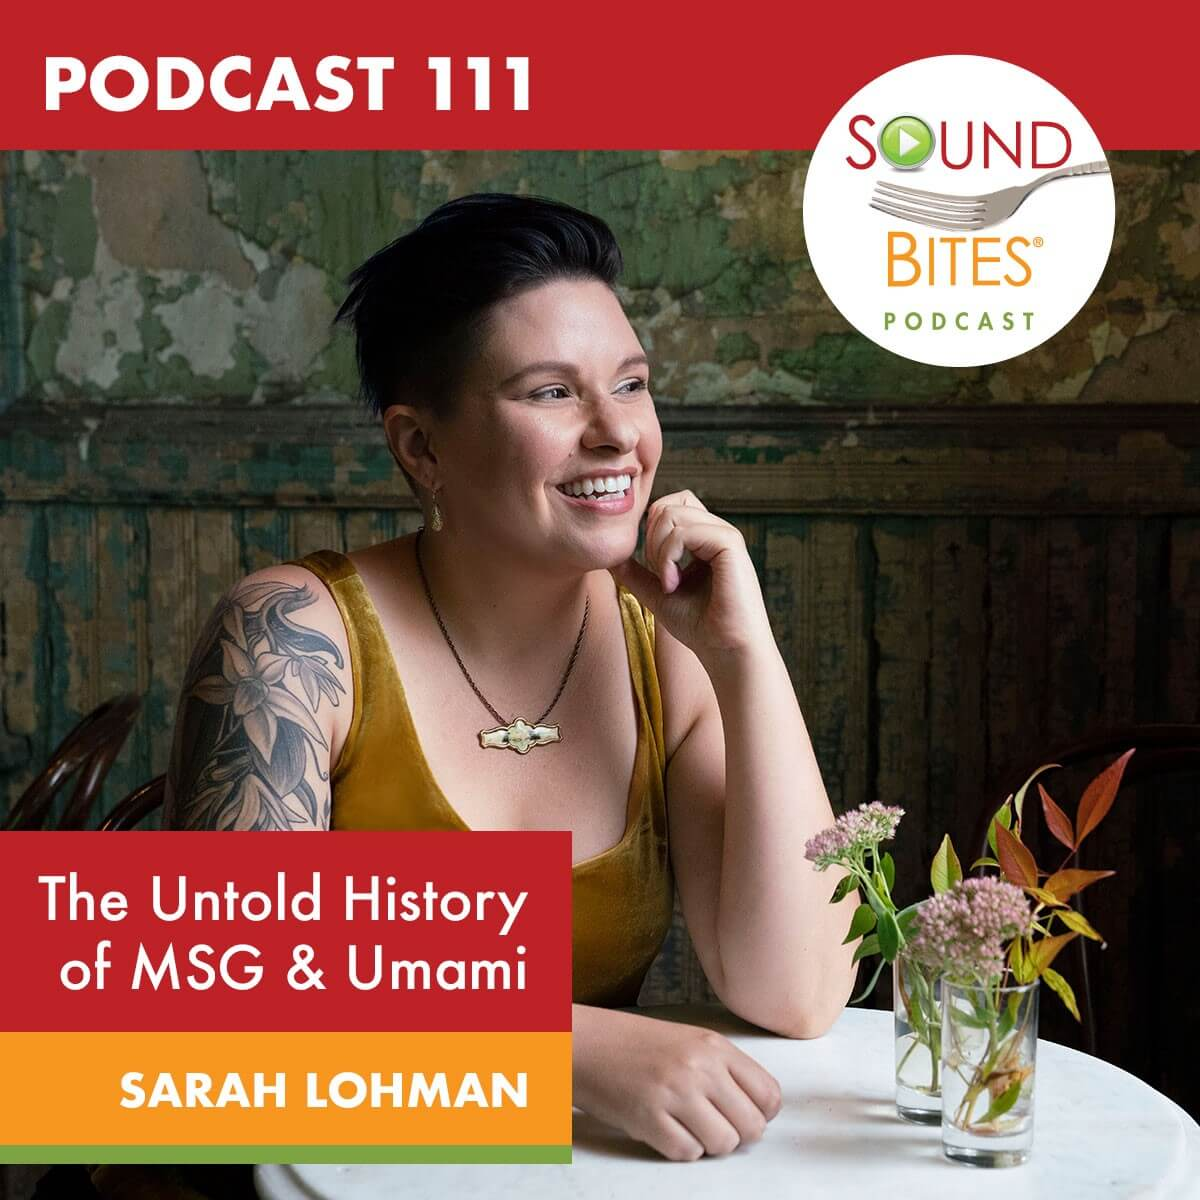 Podcast 111: The Untold History of MSG & Umami — Sarah Lohman